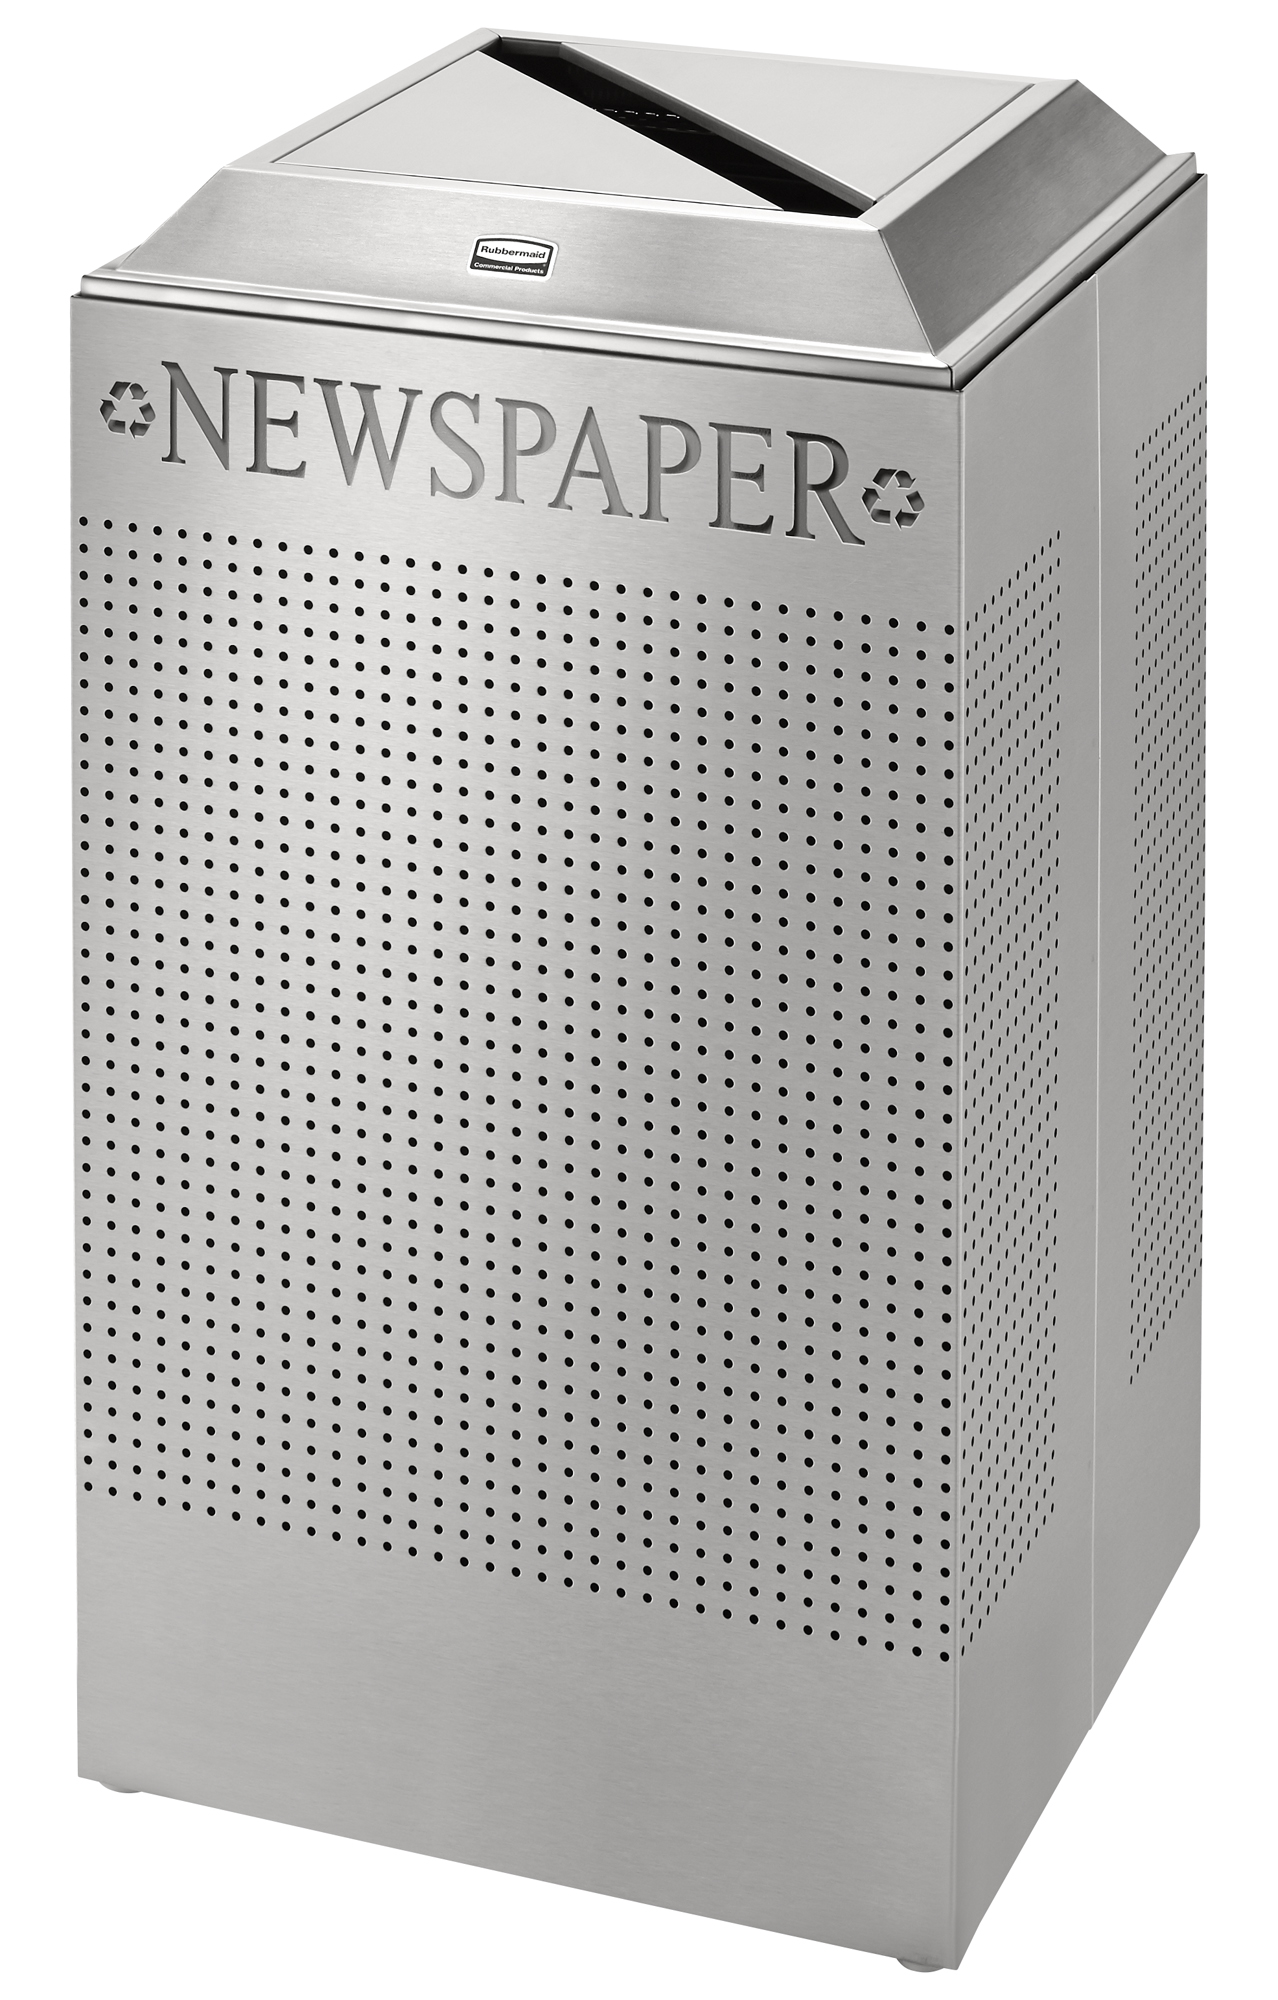 DCR24P  Silhouettes Collection 29 Gallon Square Recycling Receptacle with Paper/Newspaper Lid